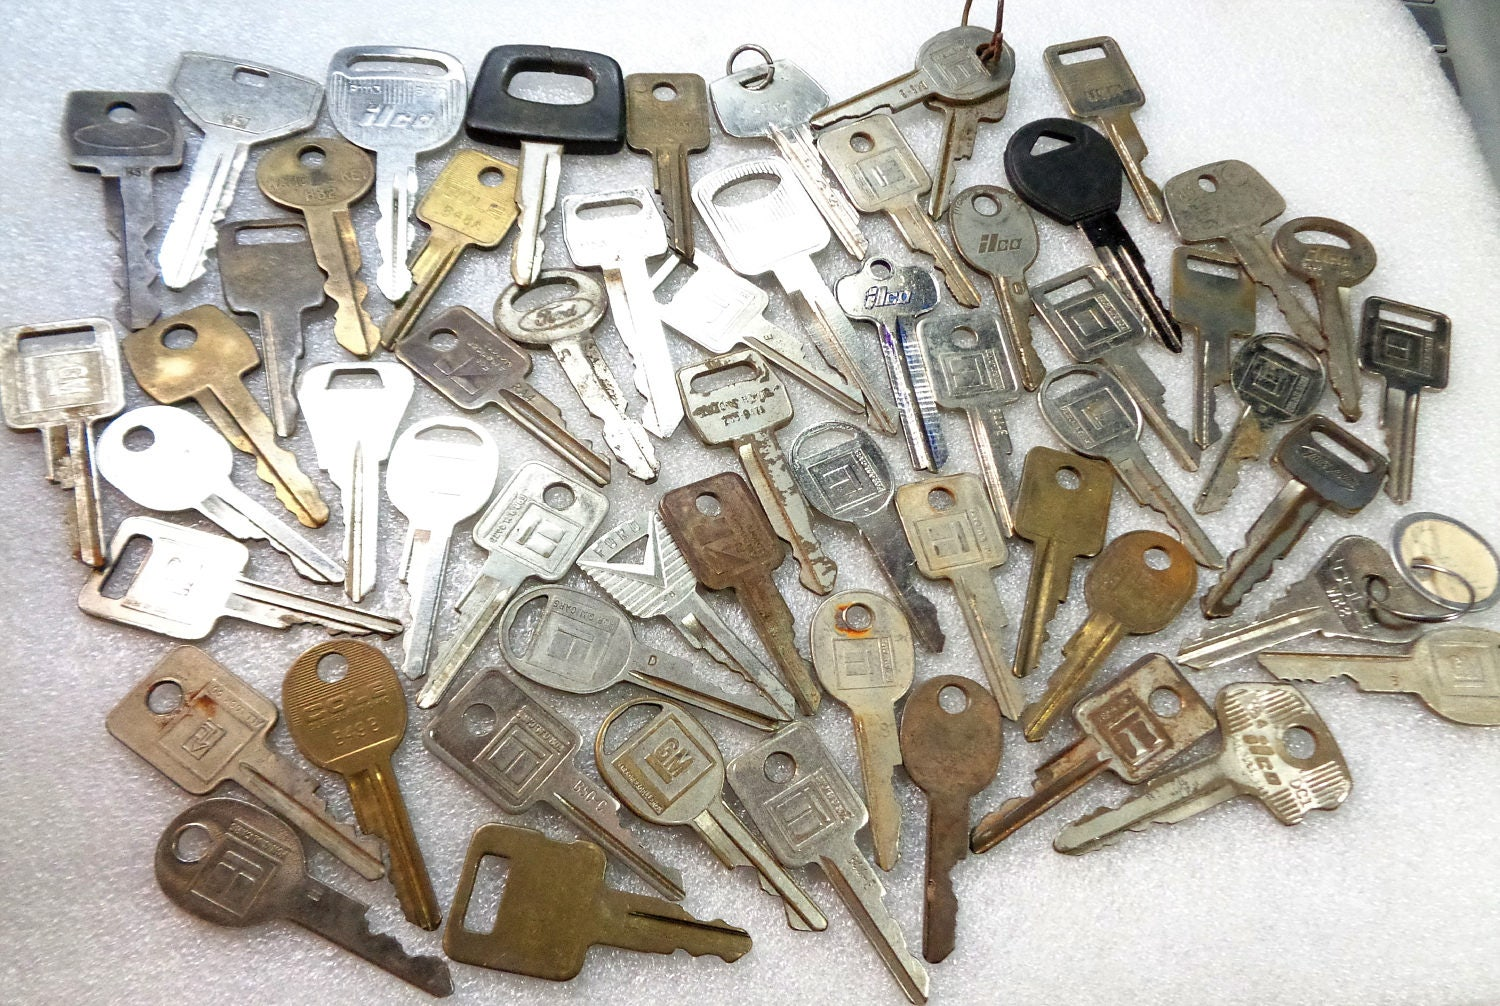 Where To Get Copies Of Car Keys Made